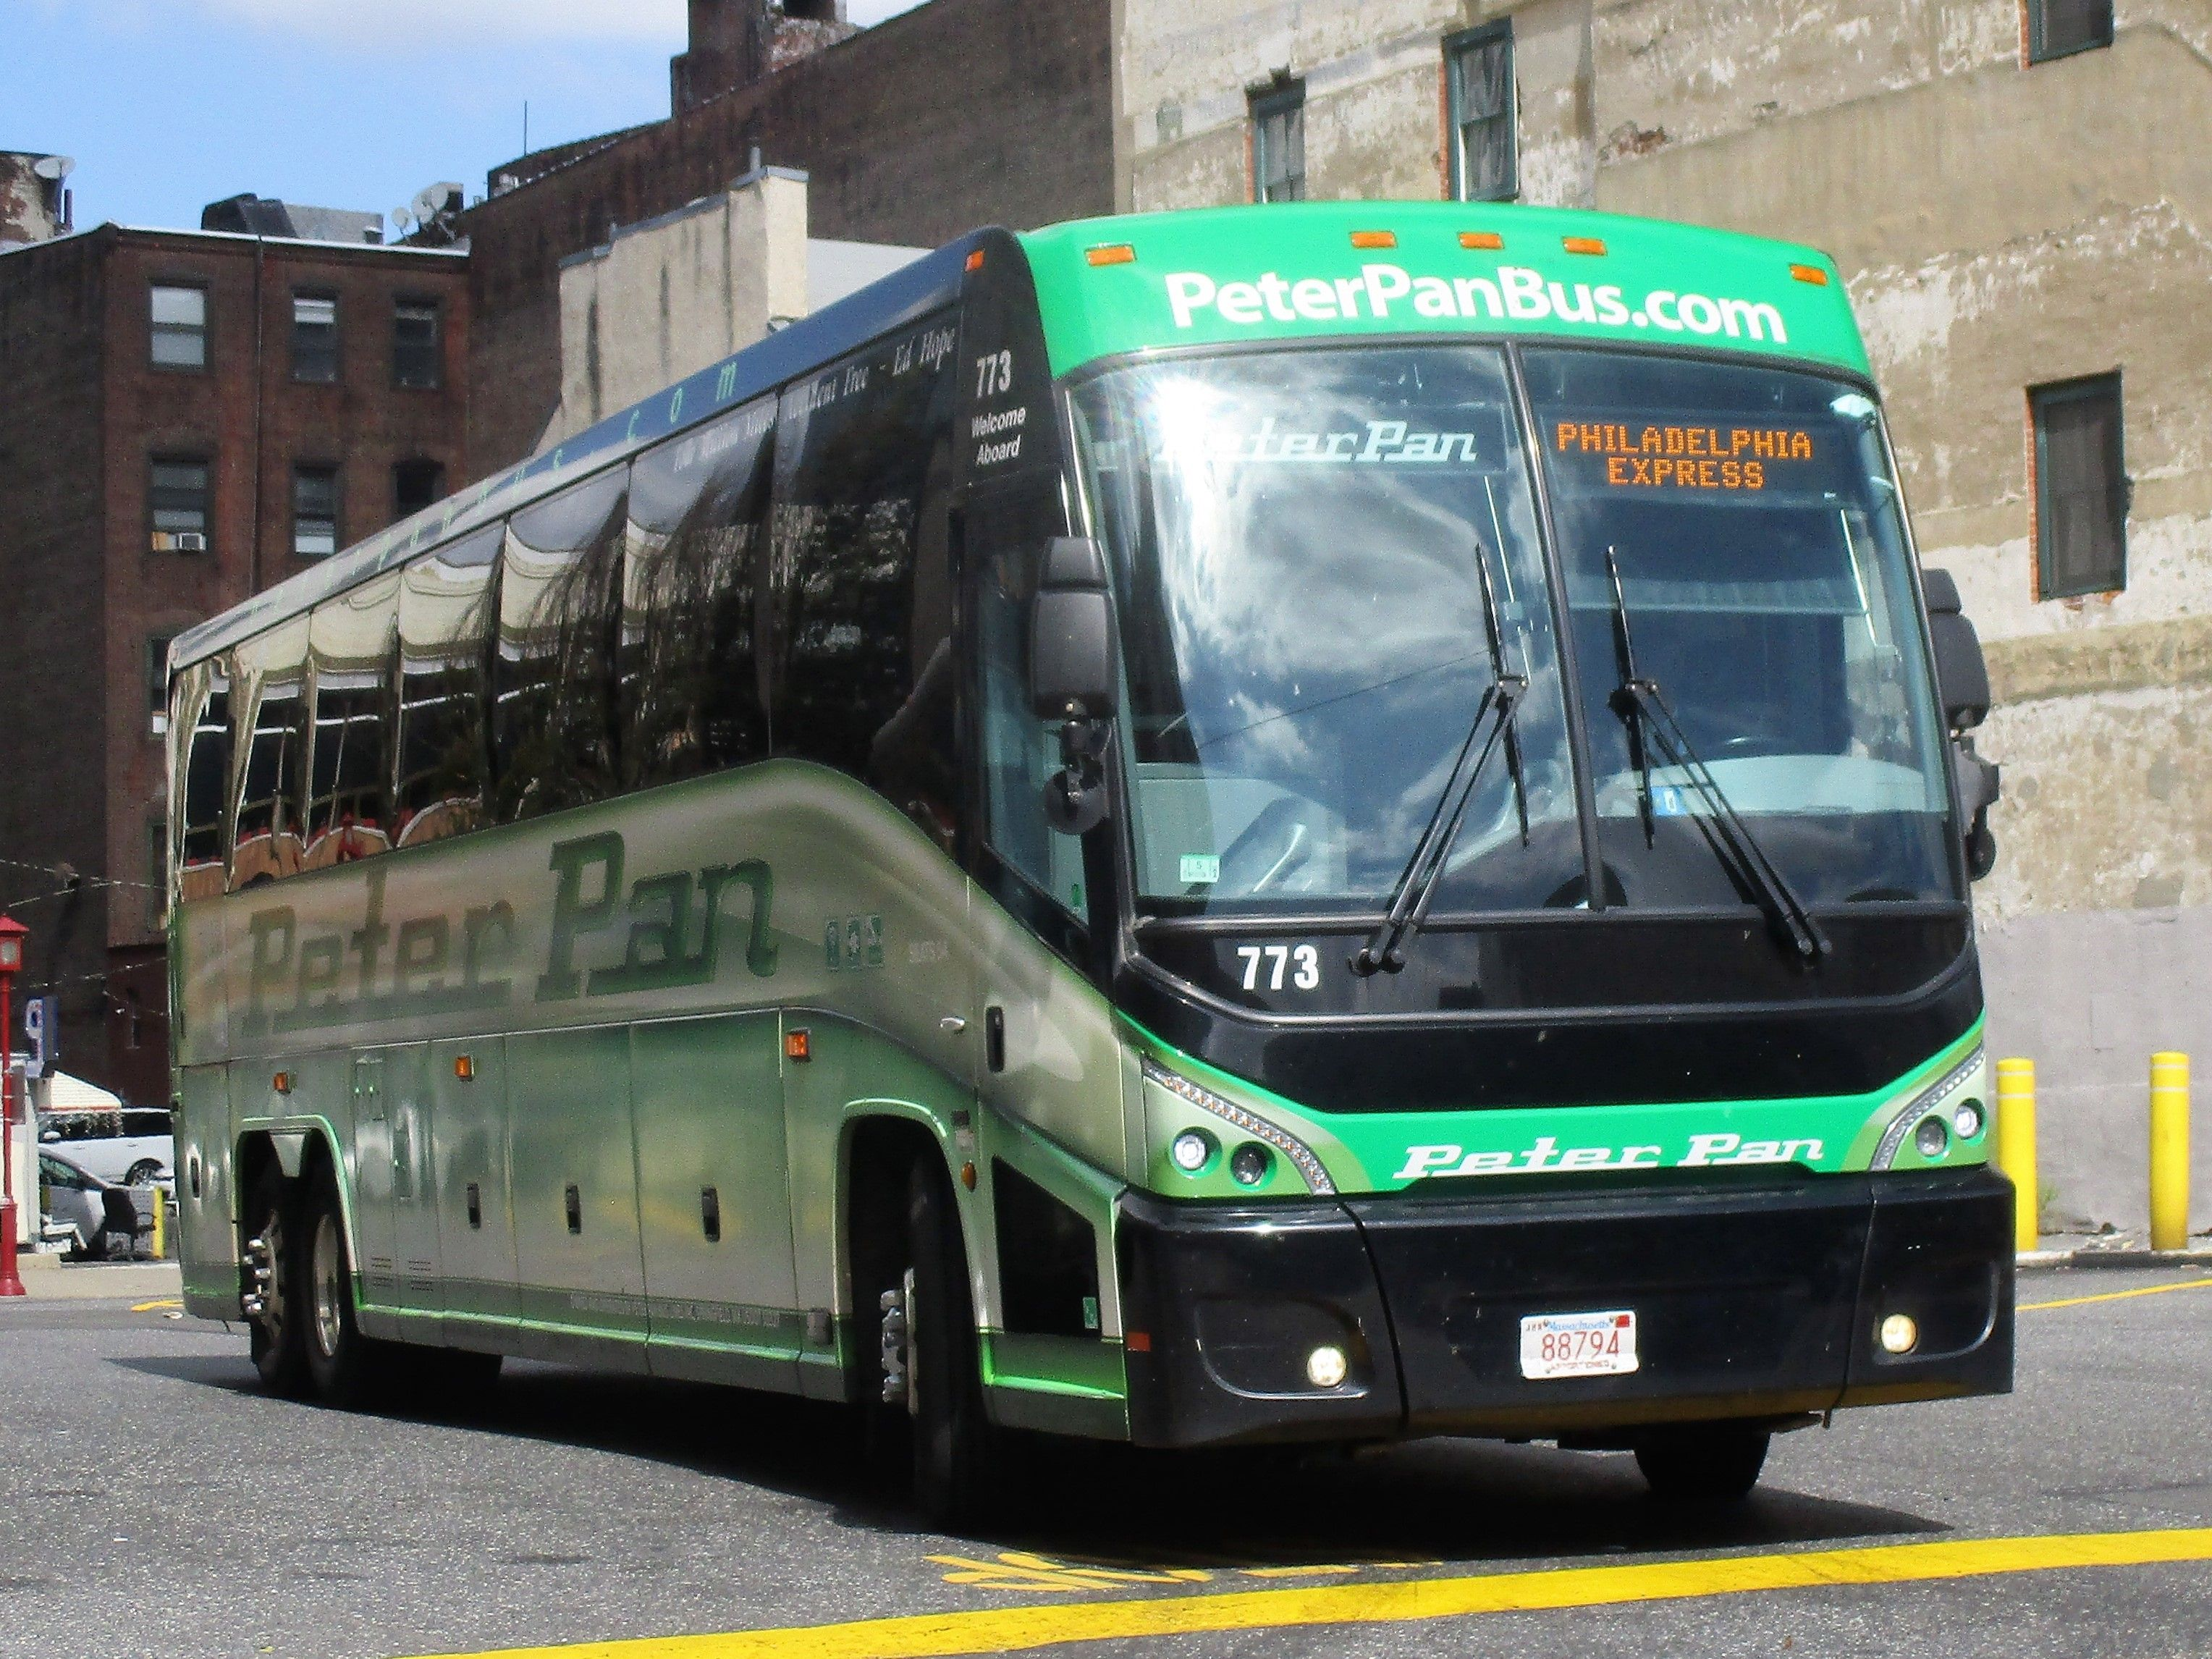 Nova bus RTS Operated by Peter Pan